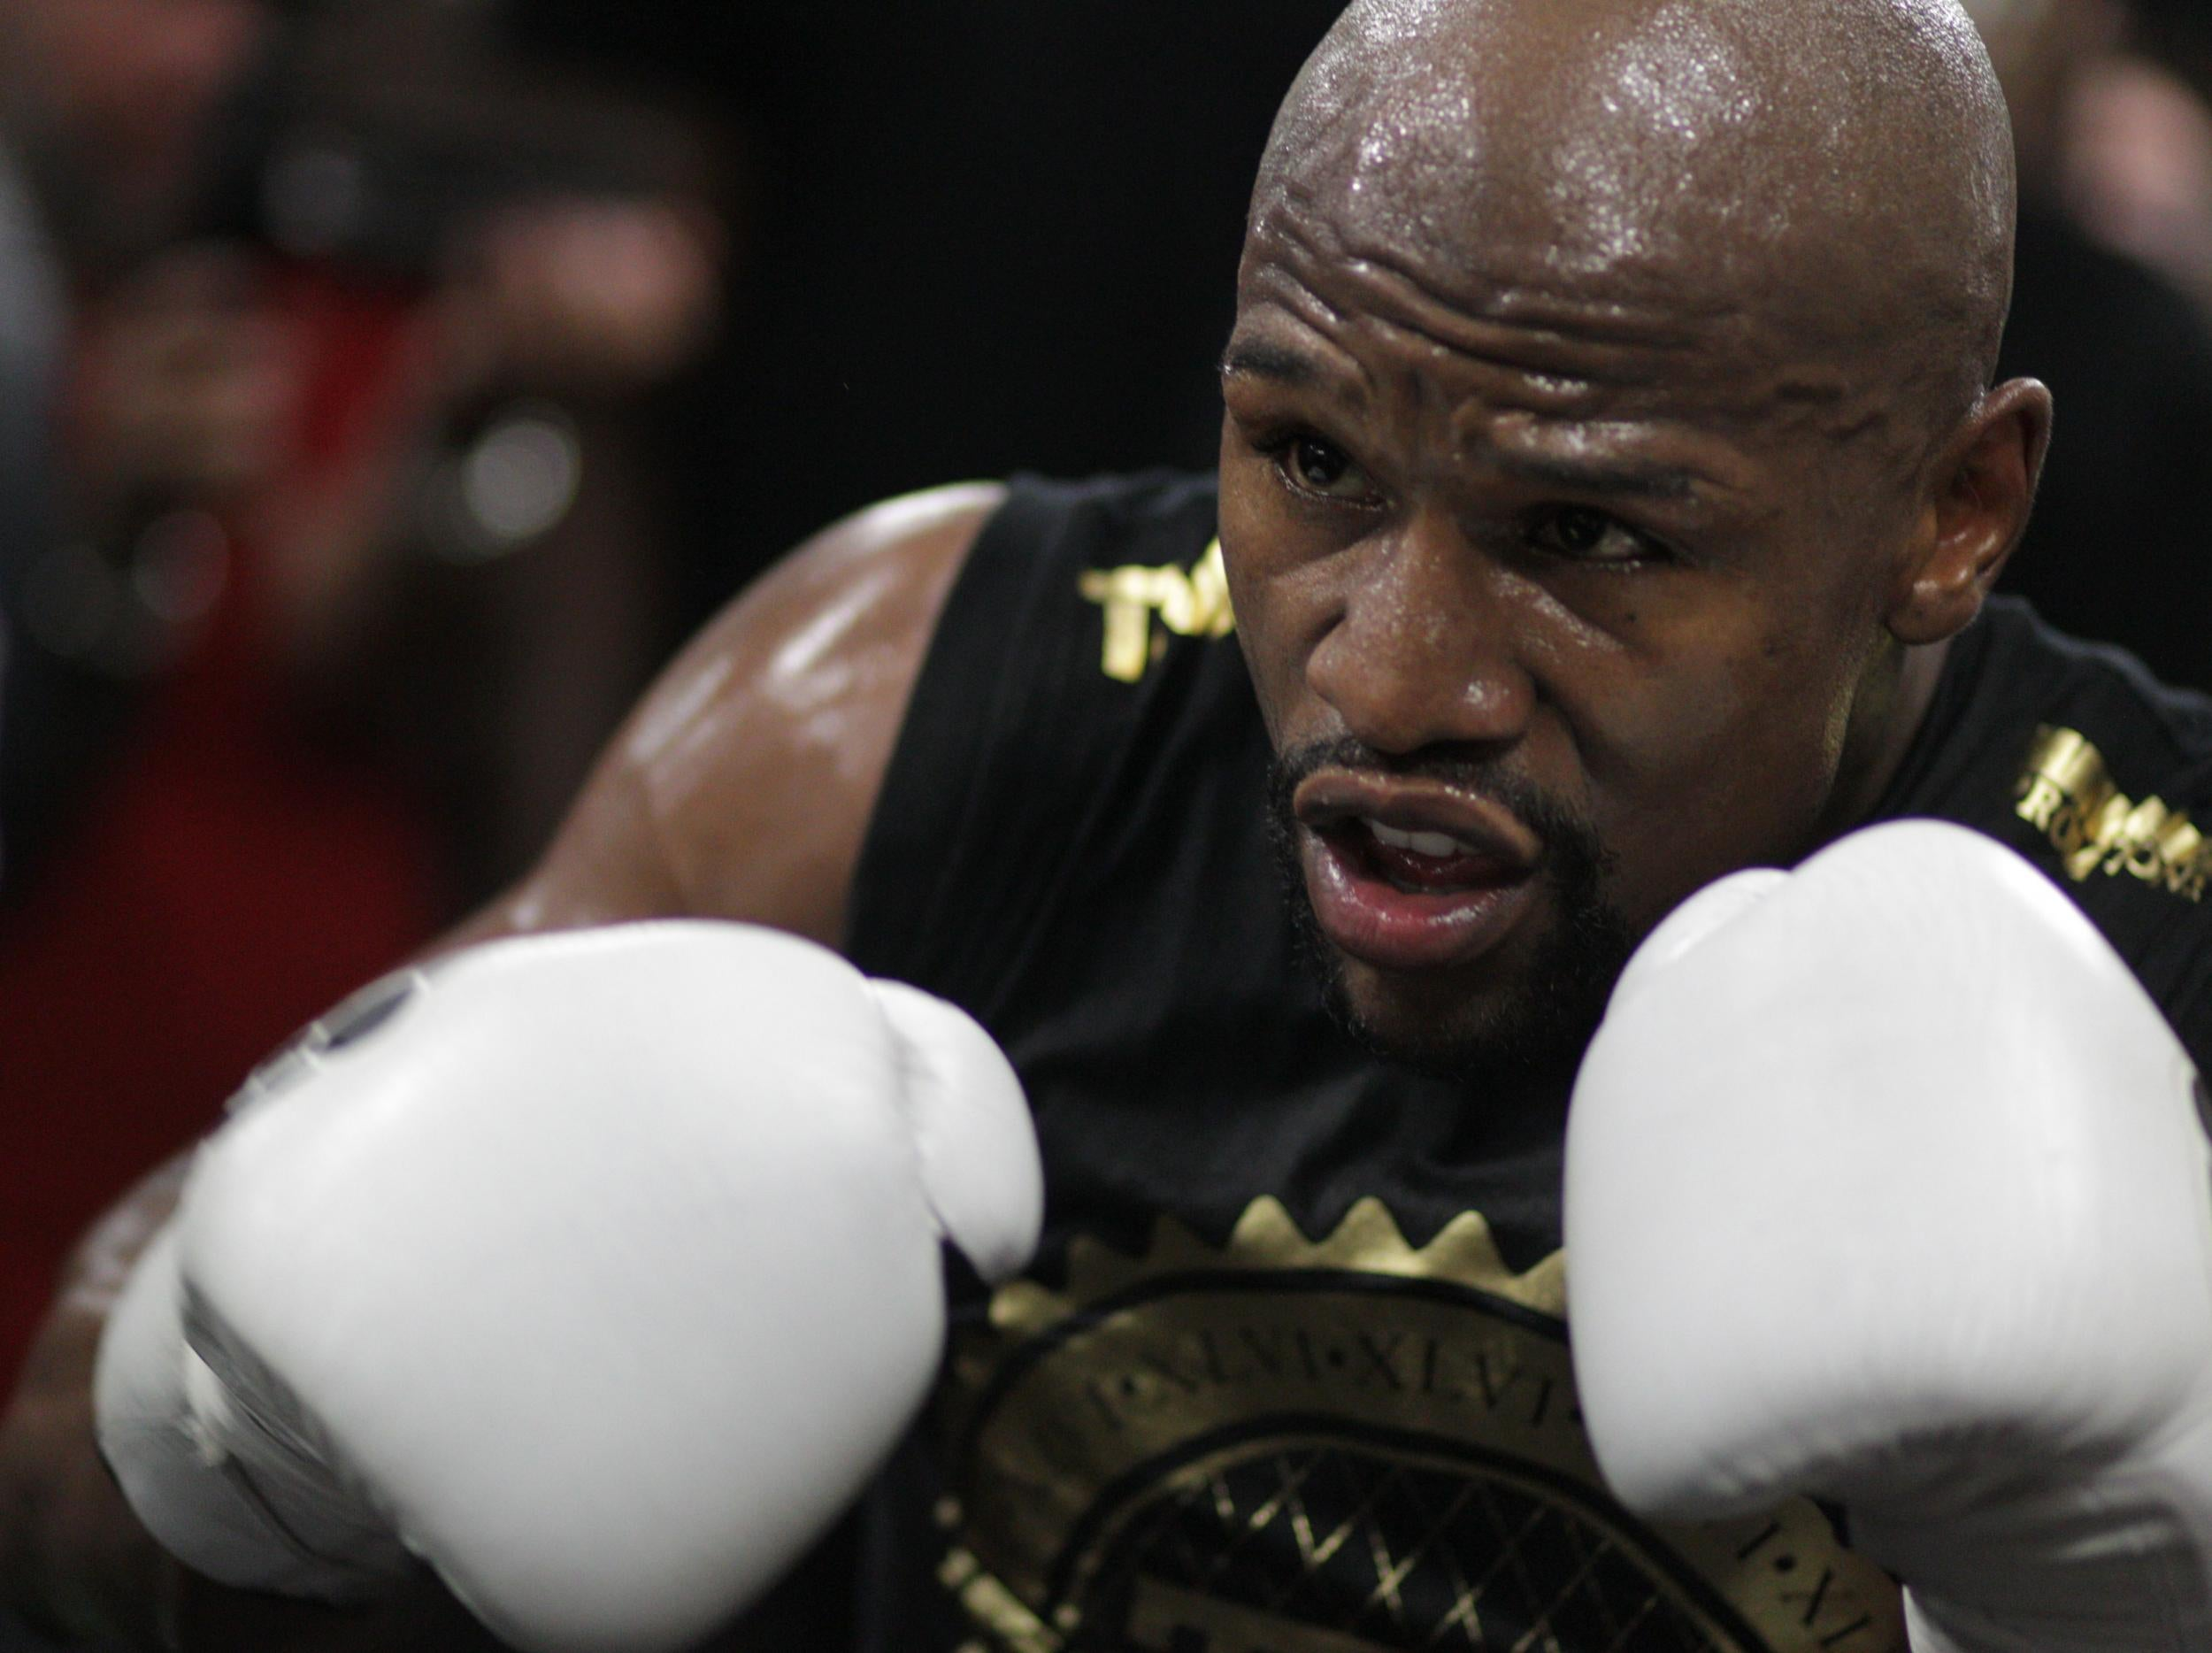 new product 41c9f c3c9d Explained  Why Floyd Mayweather asked the Nevada State Commission to fight  Conor McGregor in 8oz gloves   The Independent